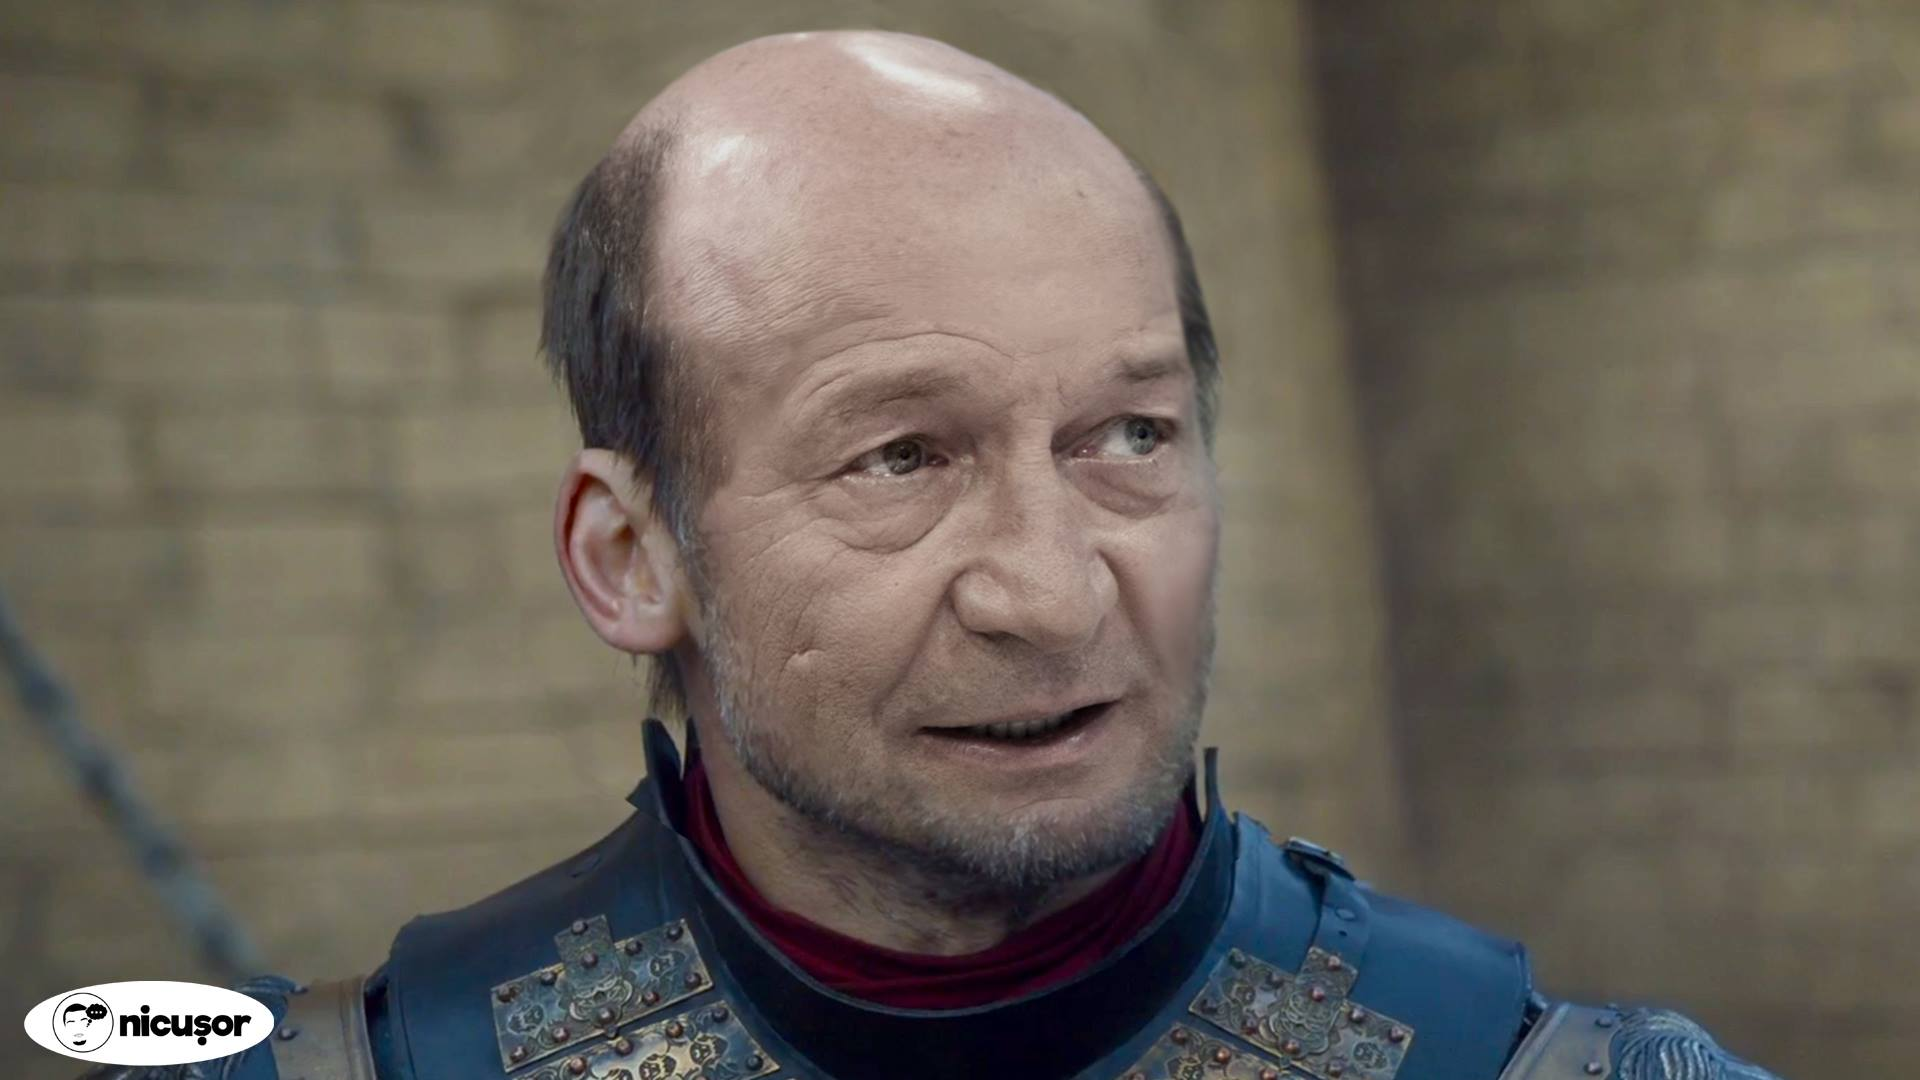 Game of Thrones Traian Basescu